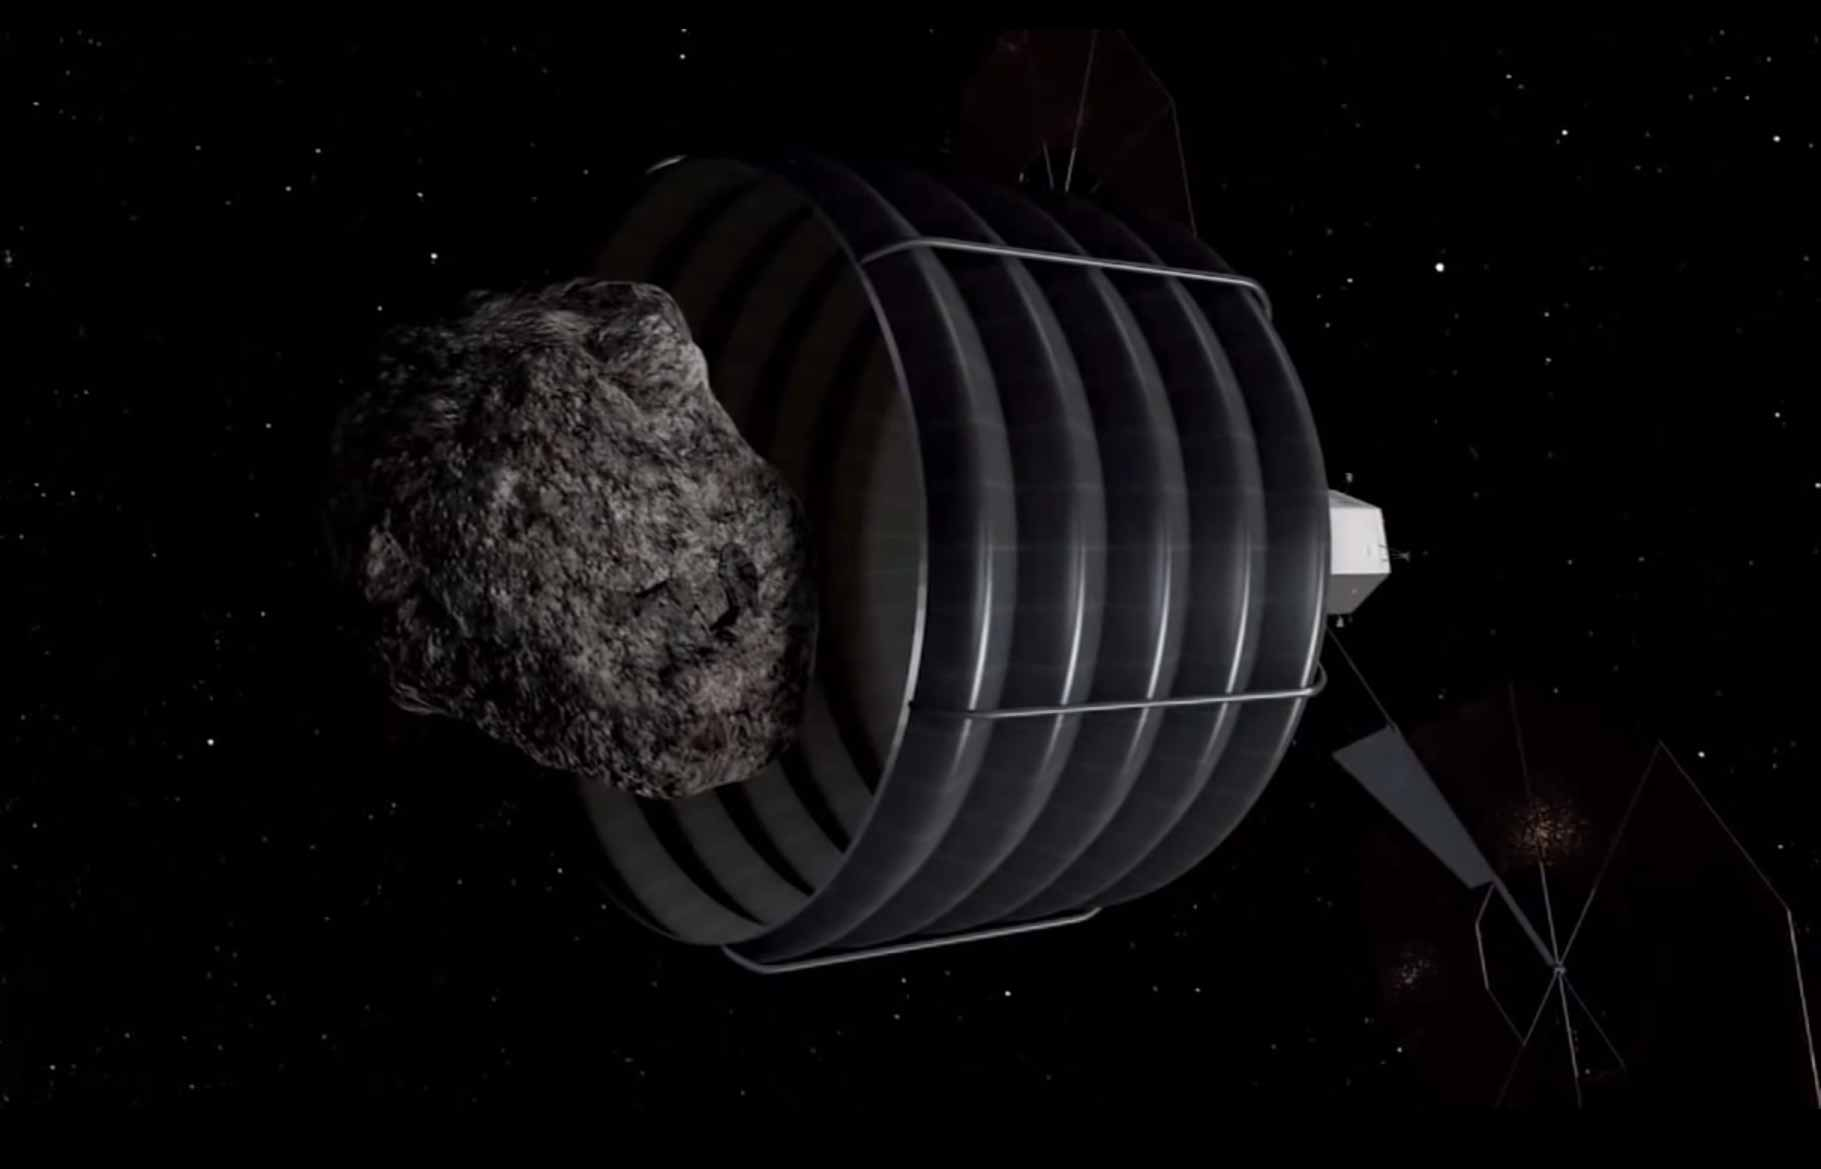 asteroid redirect trajectory - photo #19